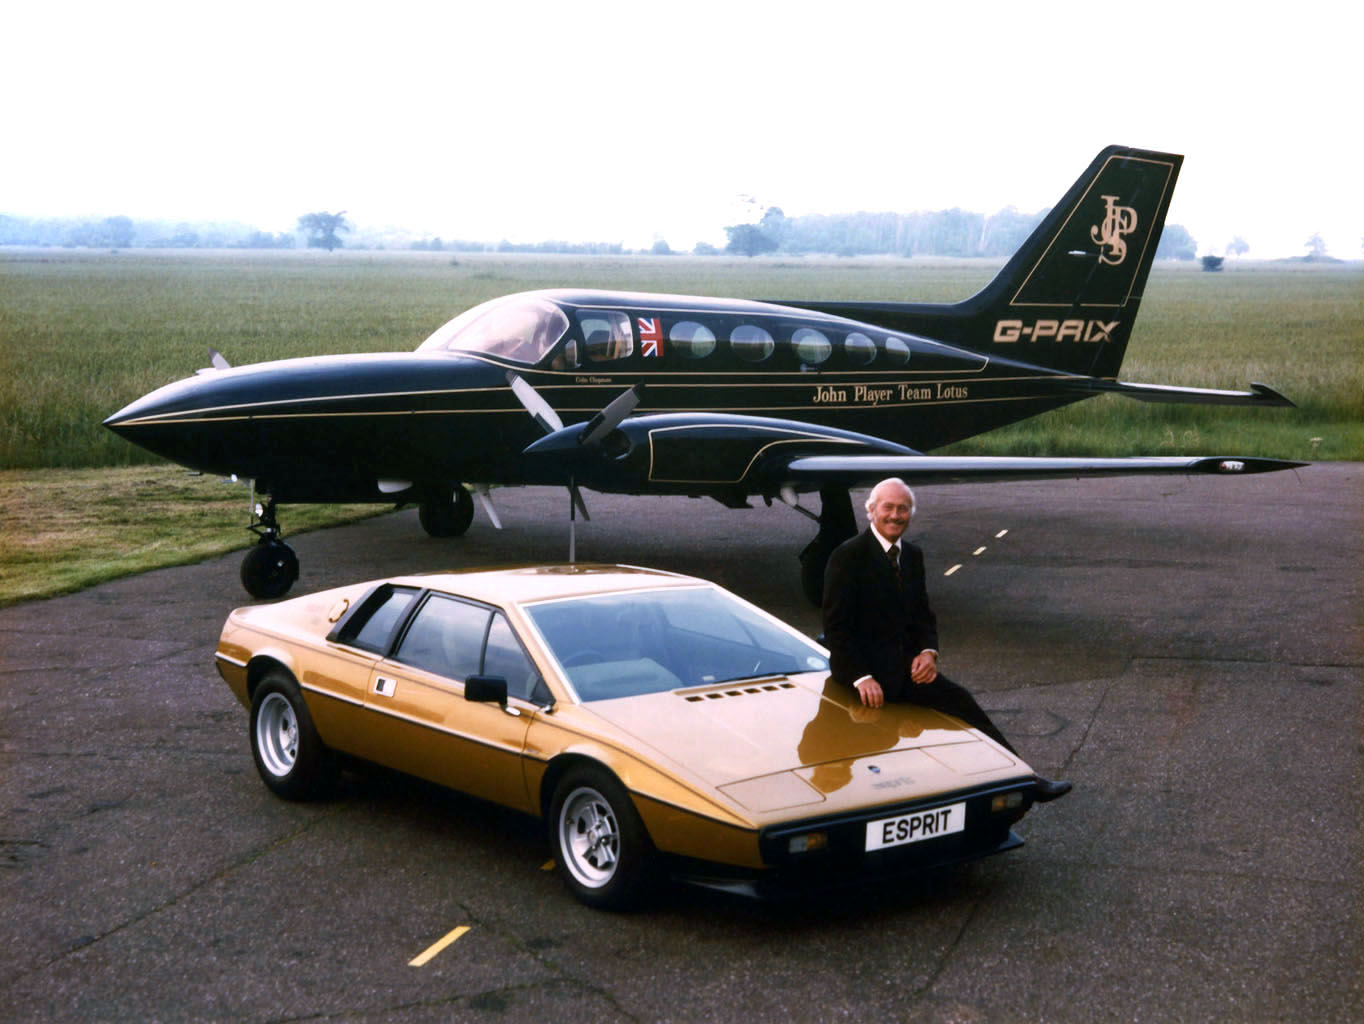 Colin Chapman Lotus Esprit S2 And The John Player Team